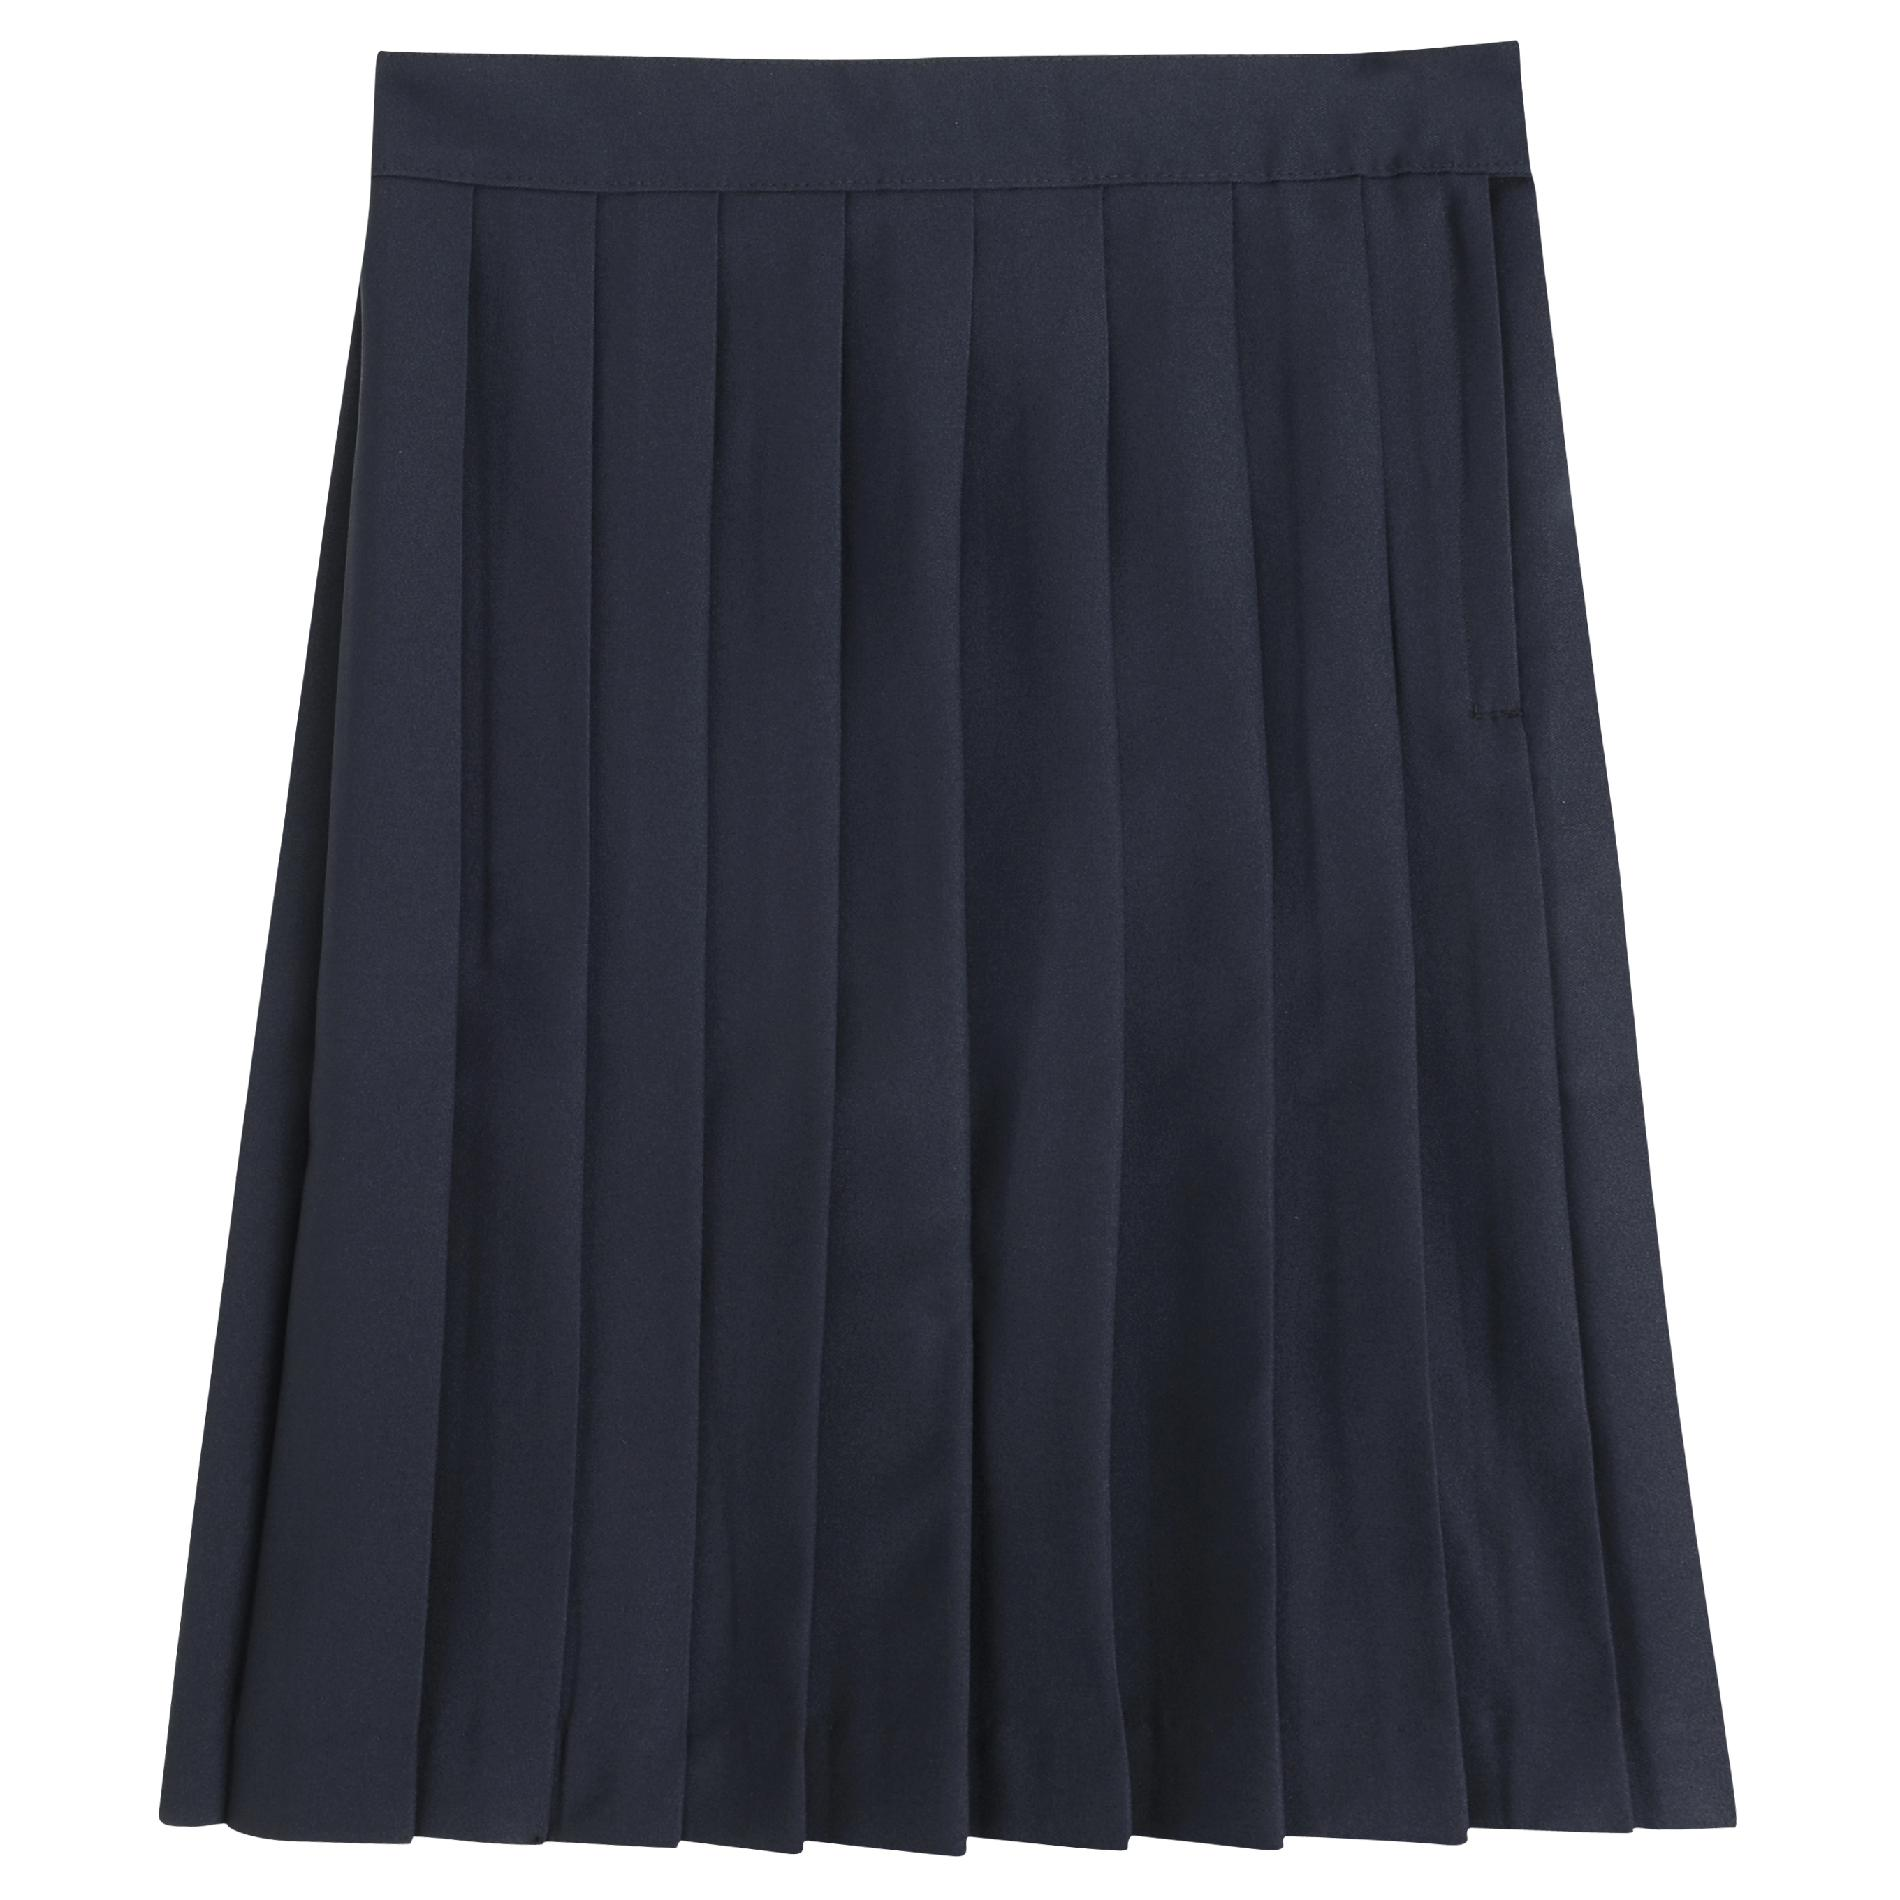 School Skirts Kmart At School By French Toast Juniors Pleated Skirt